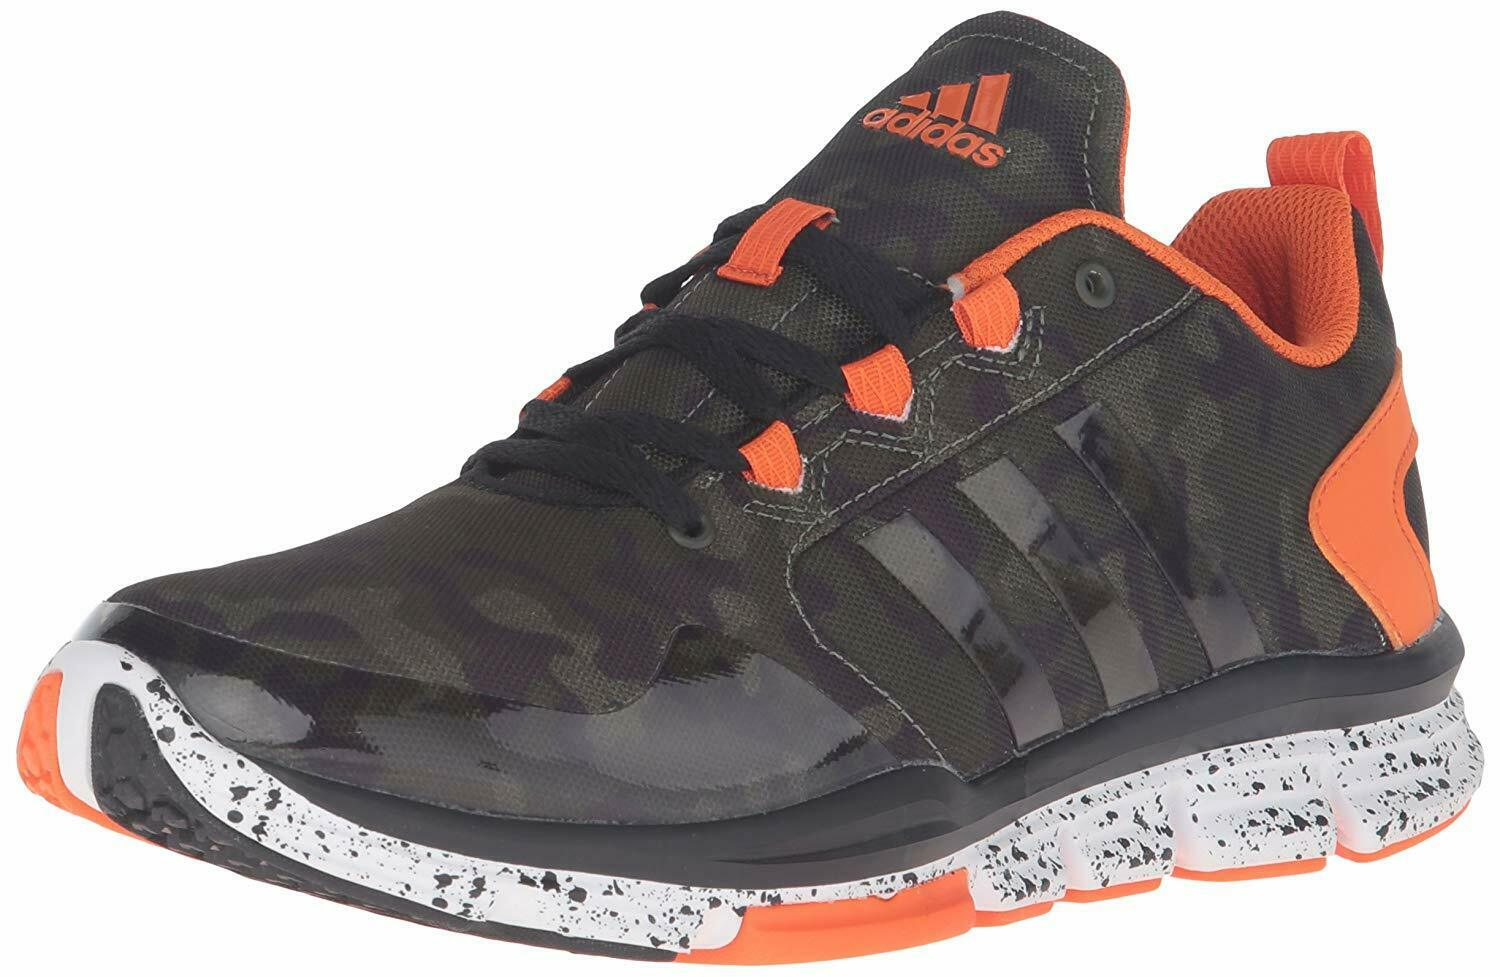 ADIDAS MENS PERFORMANCE SPEED 2 CROSS TRAINER SNEAKERS D70240 CAMO ORG